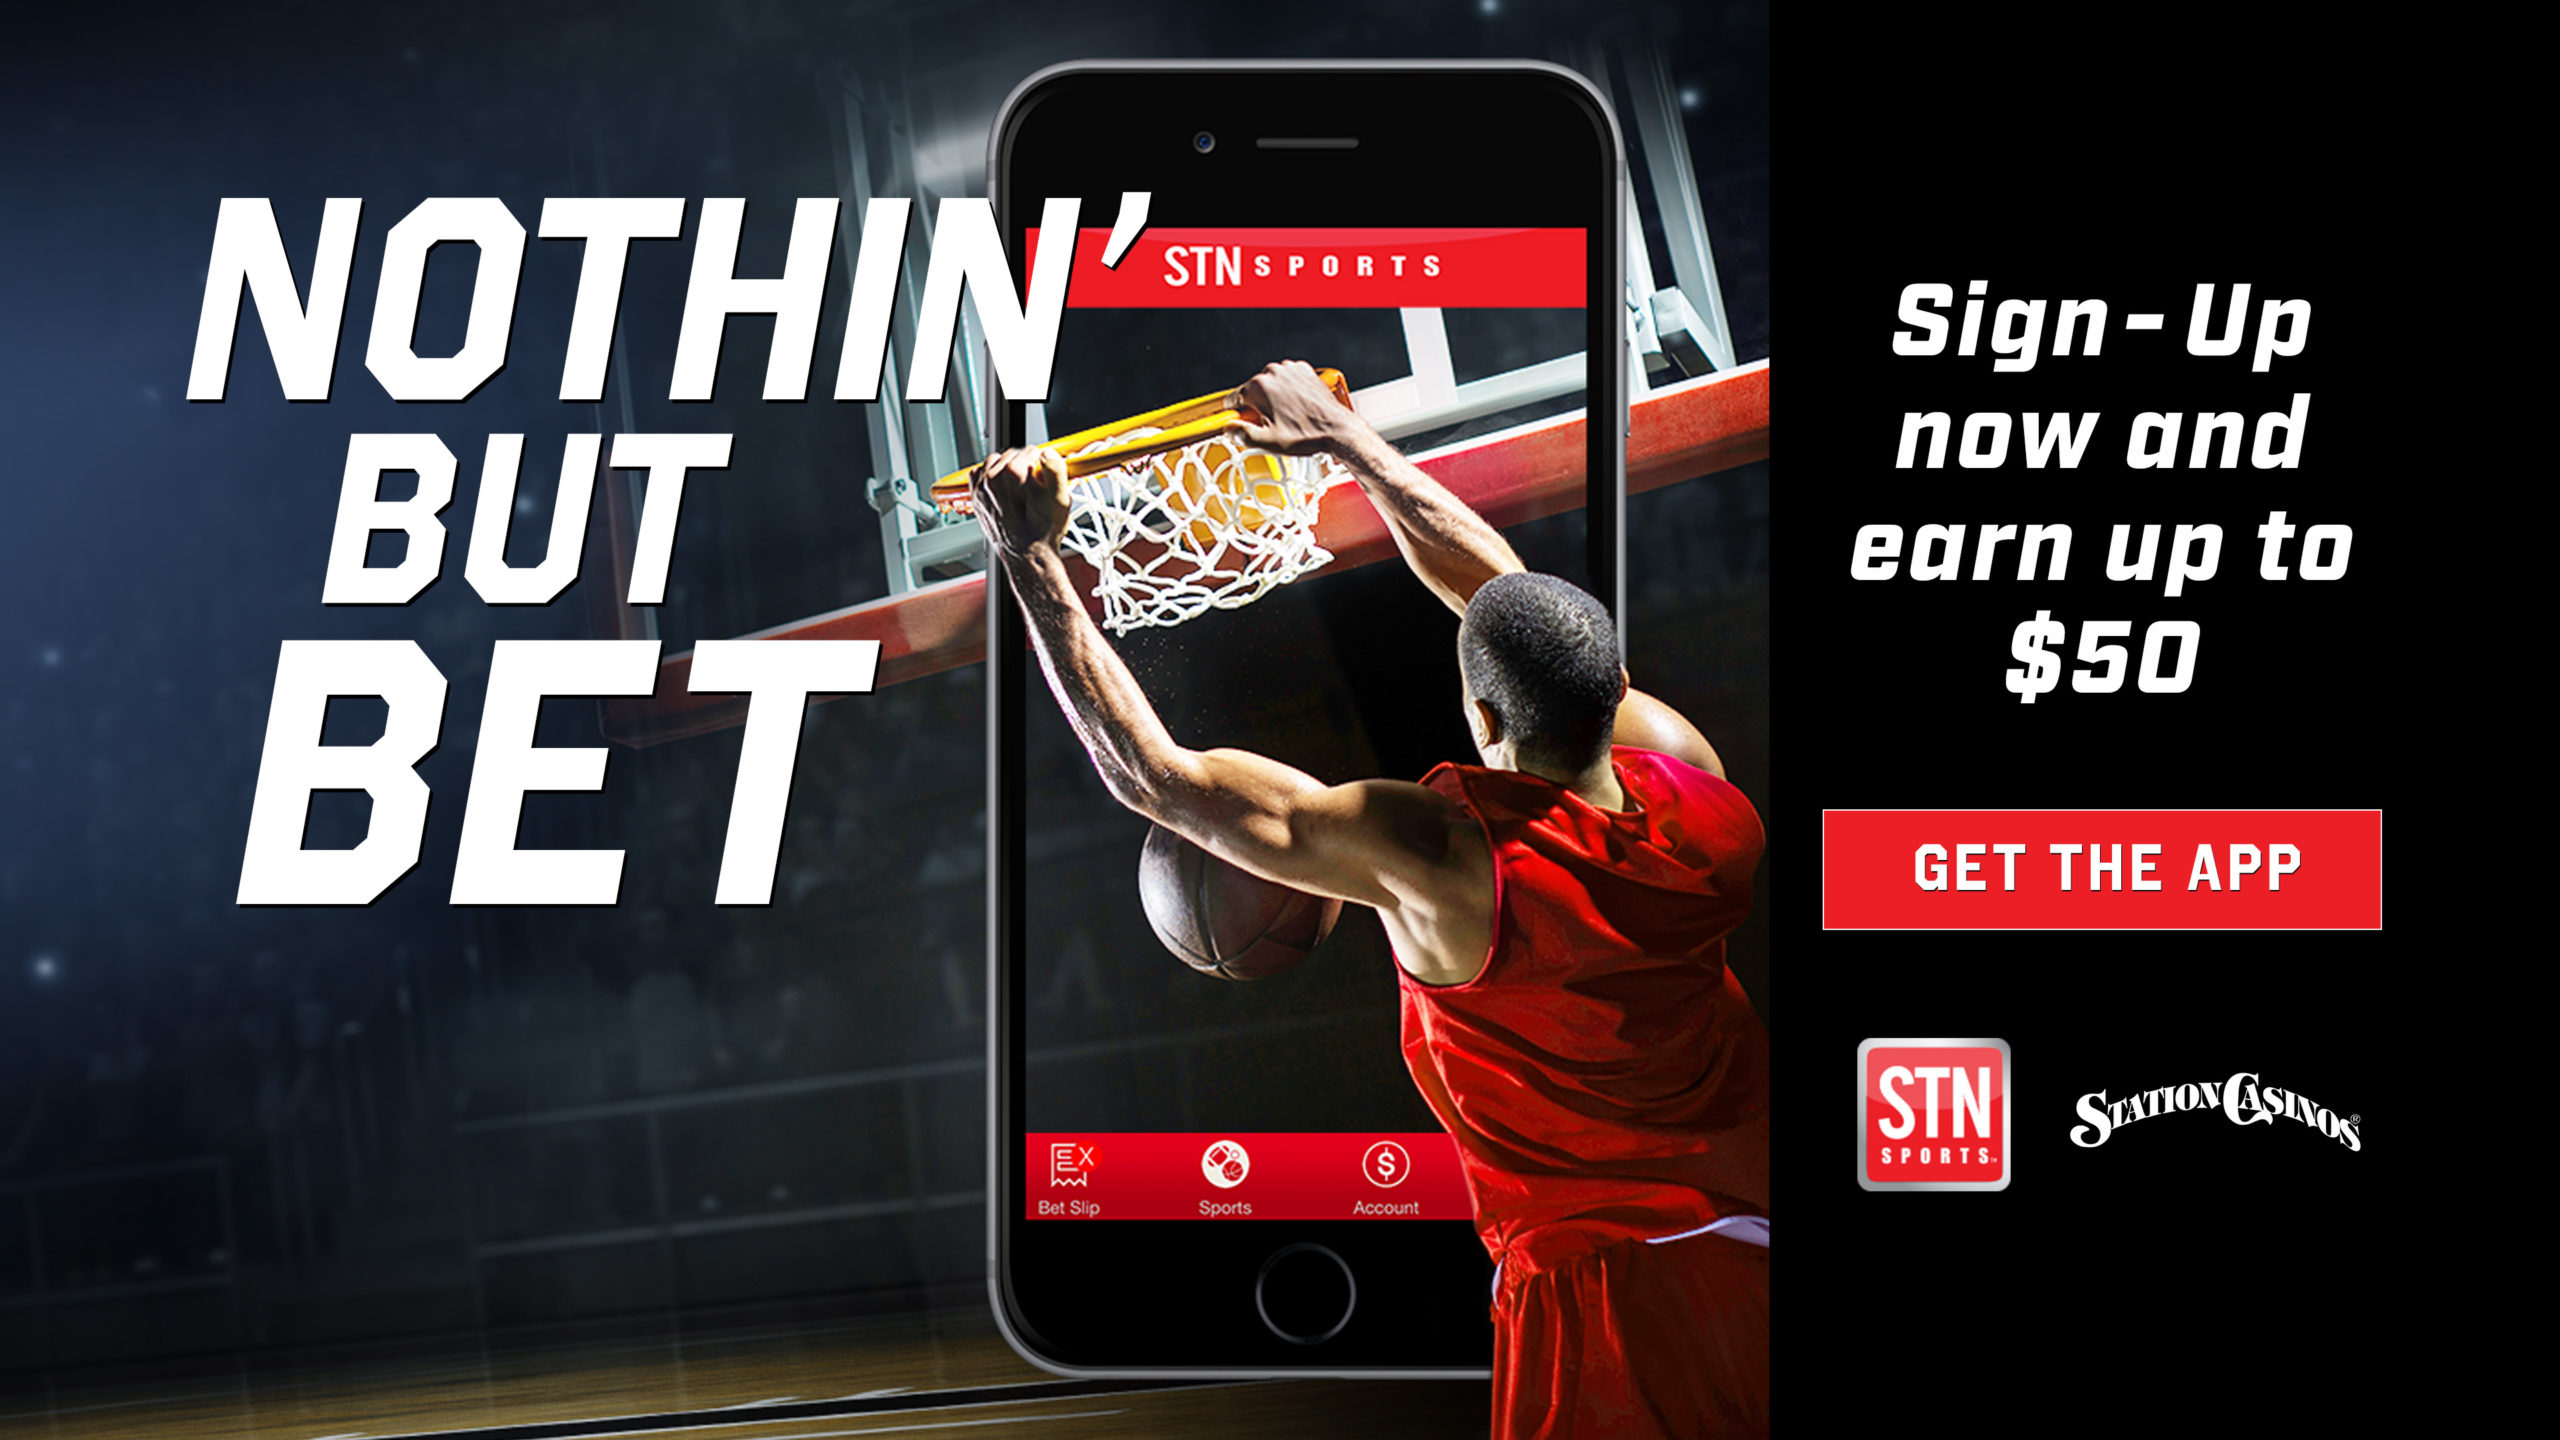 STN Sports Nothin' But Bet promotion to get the app